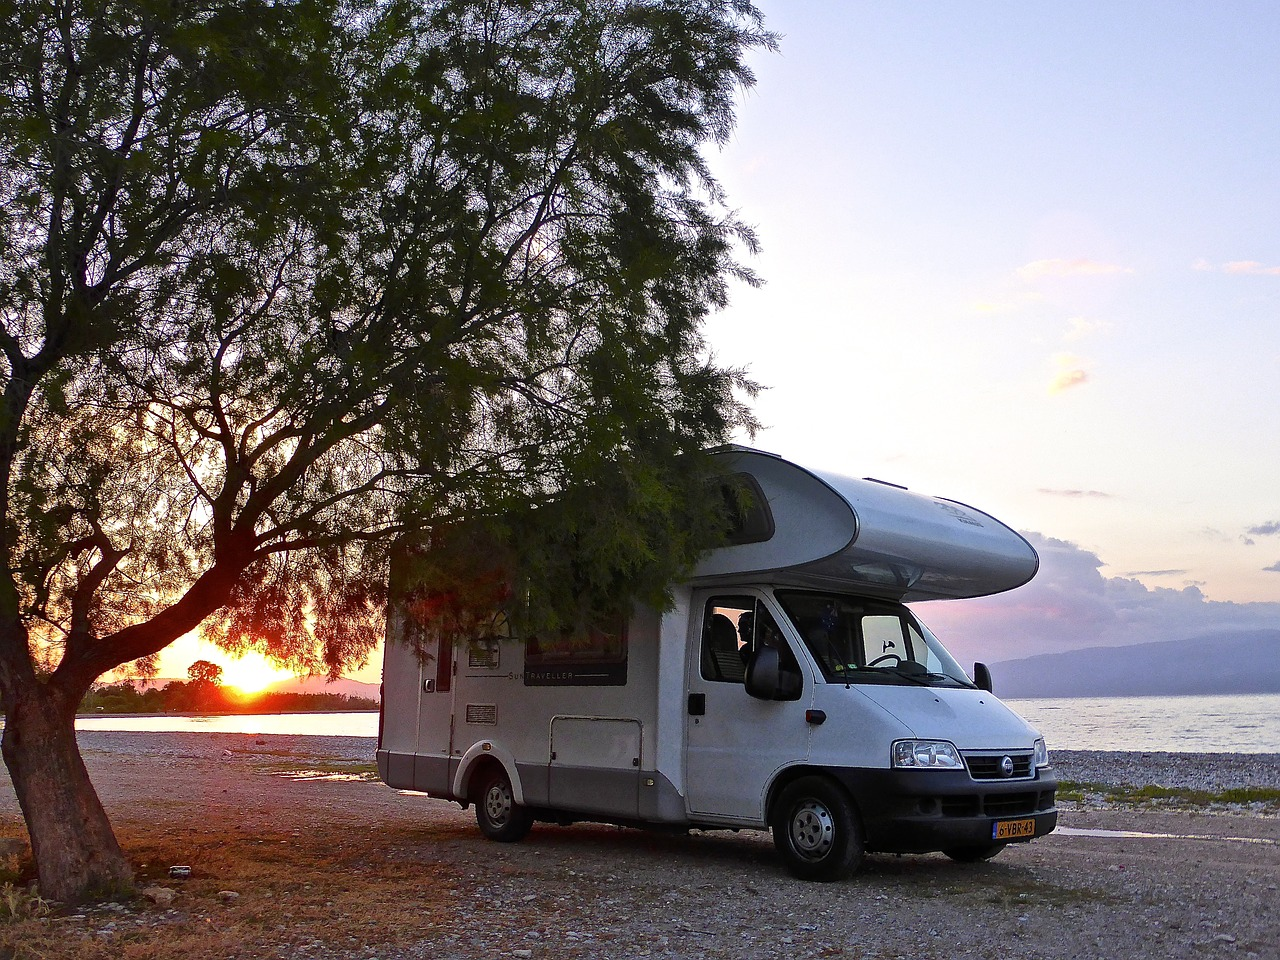 A large campervan parked on a rocky shoreline at sunset